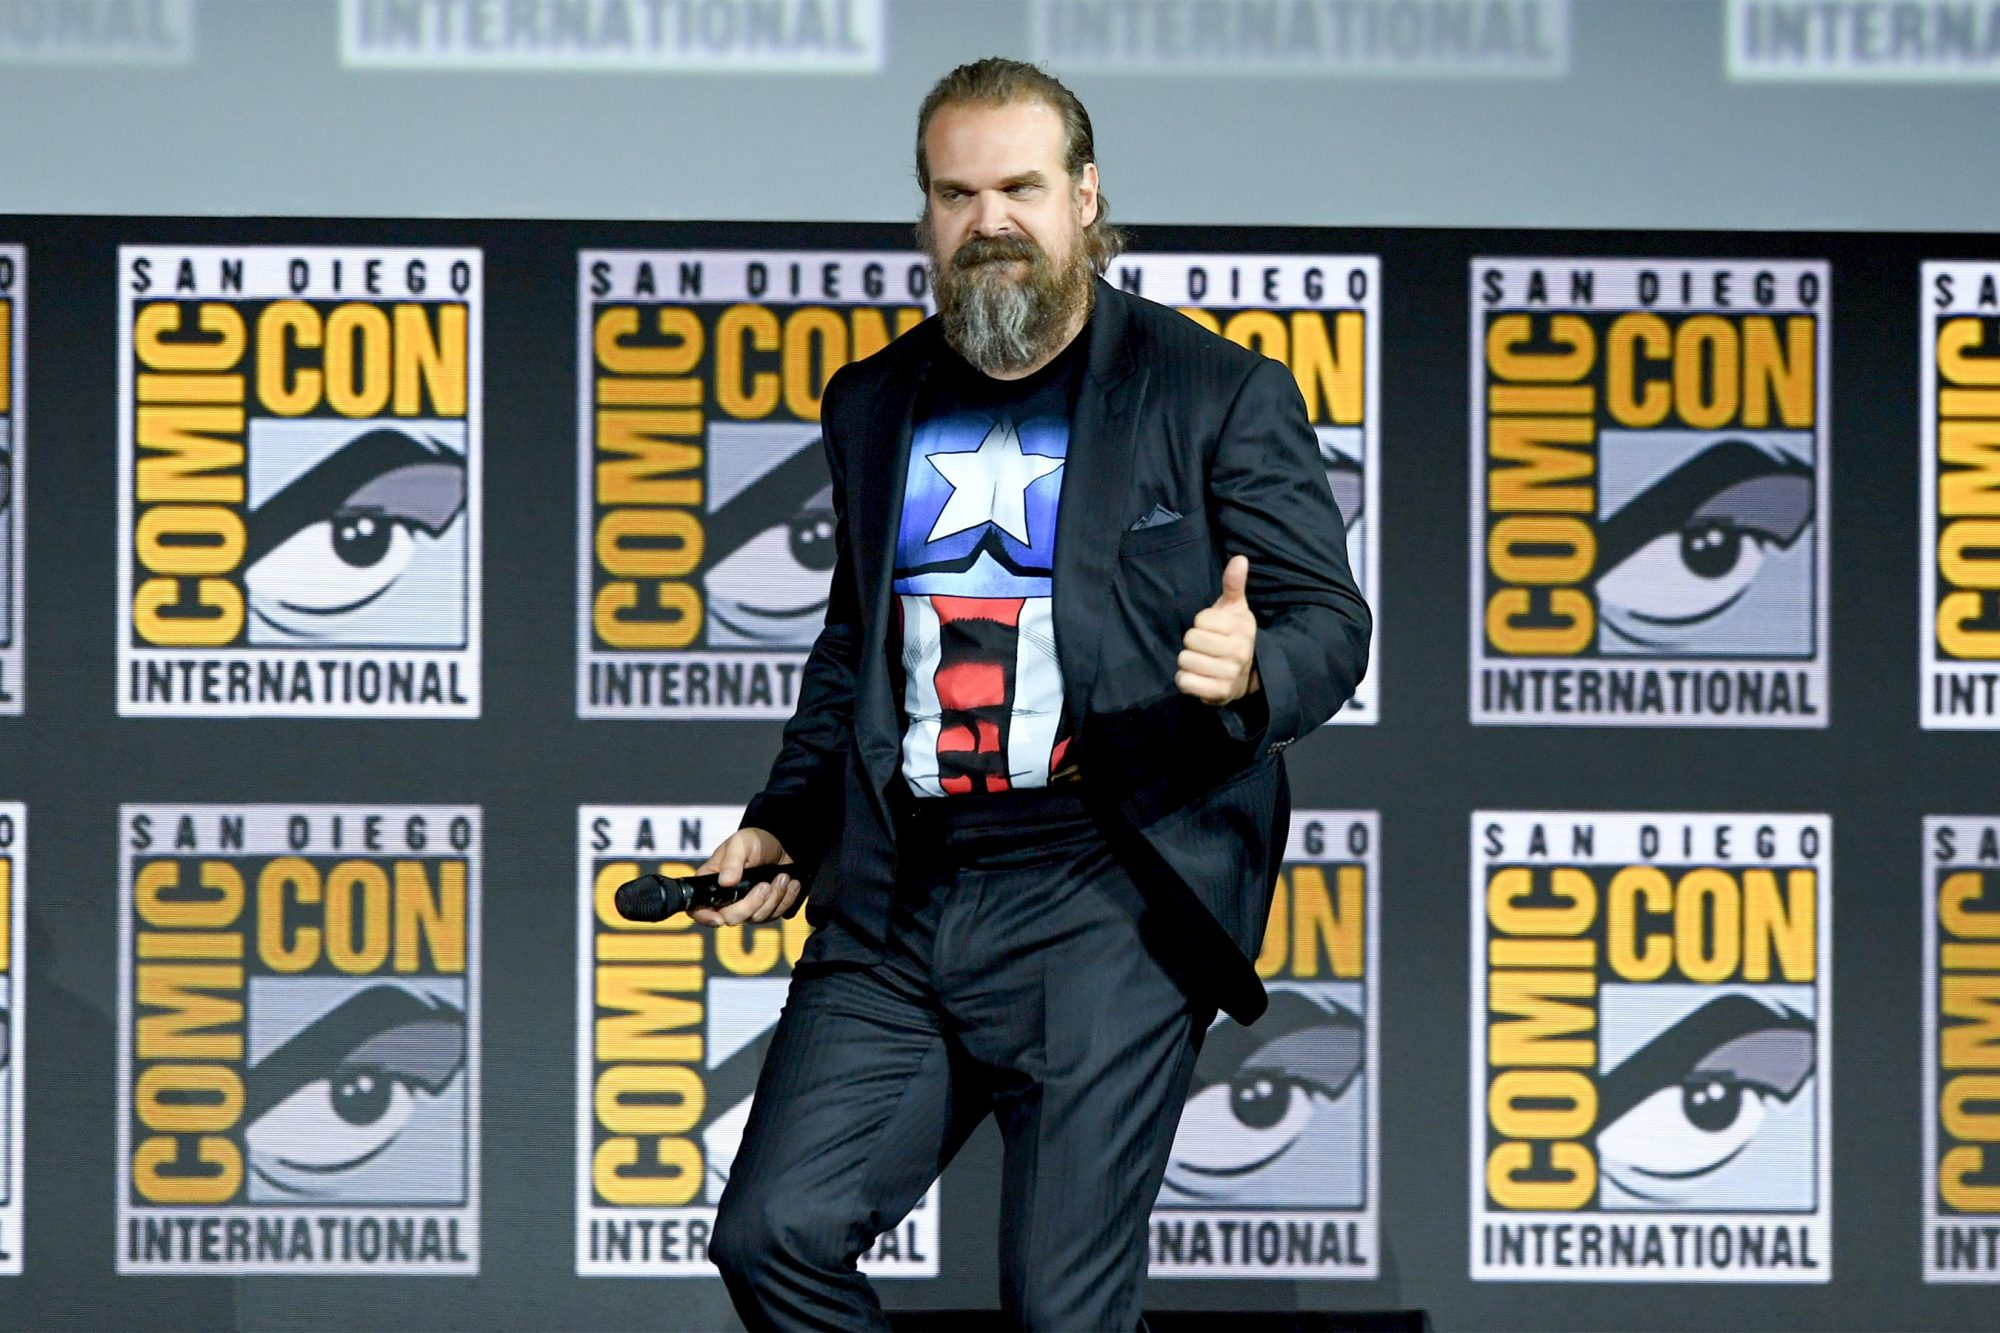 SAN DIEGO, CALIFORNIA - JULY 20: David Harbour speaks at the Marvel Studios Panel during 2019 Comic-Con International at San Diego Convention Center on July 20, 2019 in San Diego, California. (Photo by Kevin Winter/Getty Images)